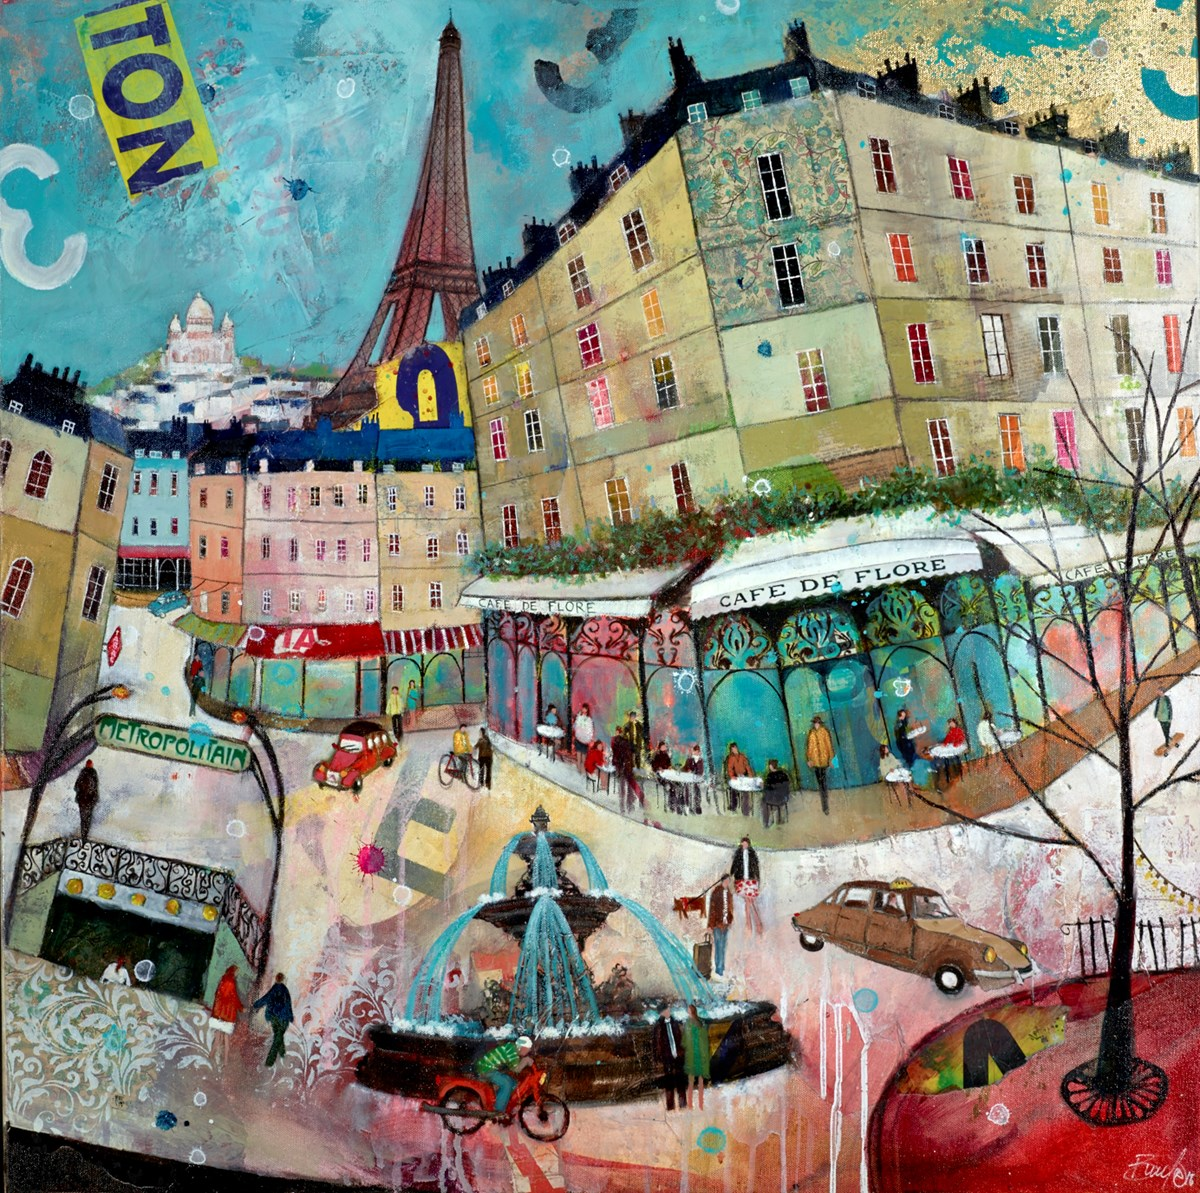 Cafe de Flore, Paris by richard burel -  sized 32x32 inches. Available from Whitewall Galleries